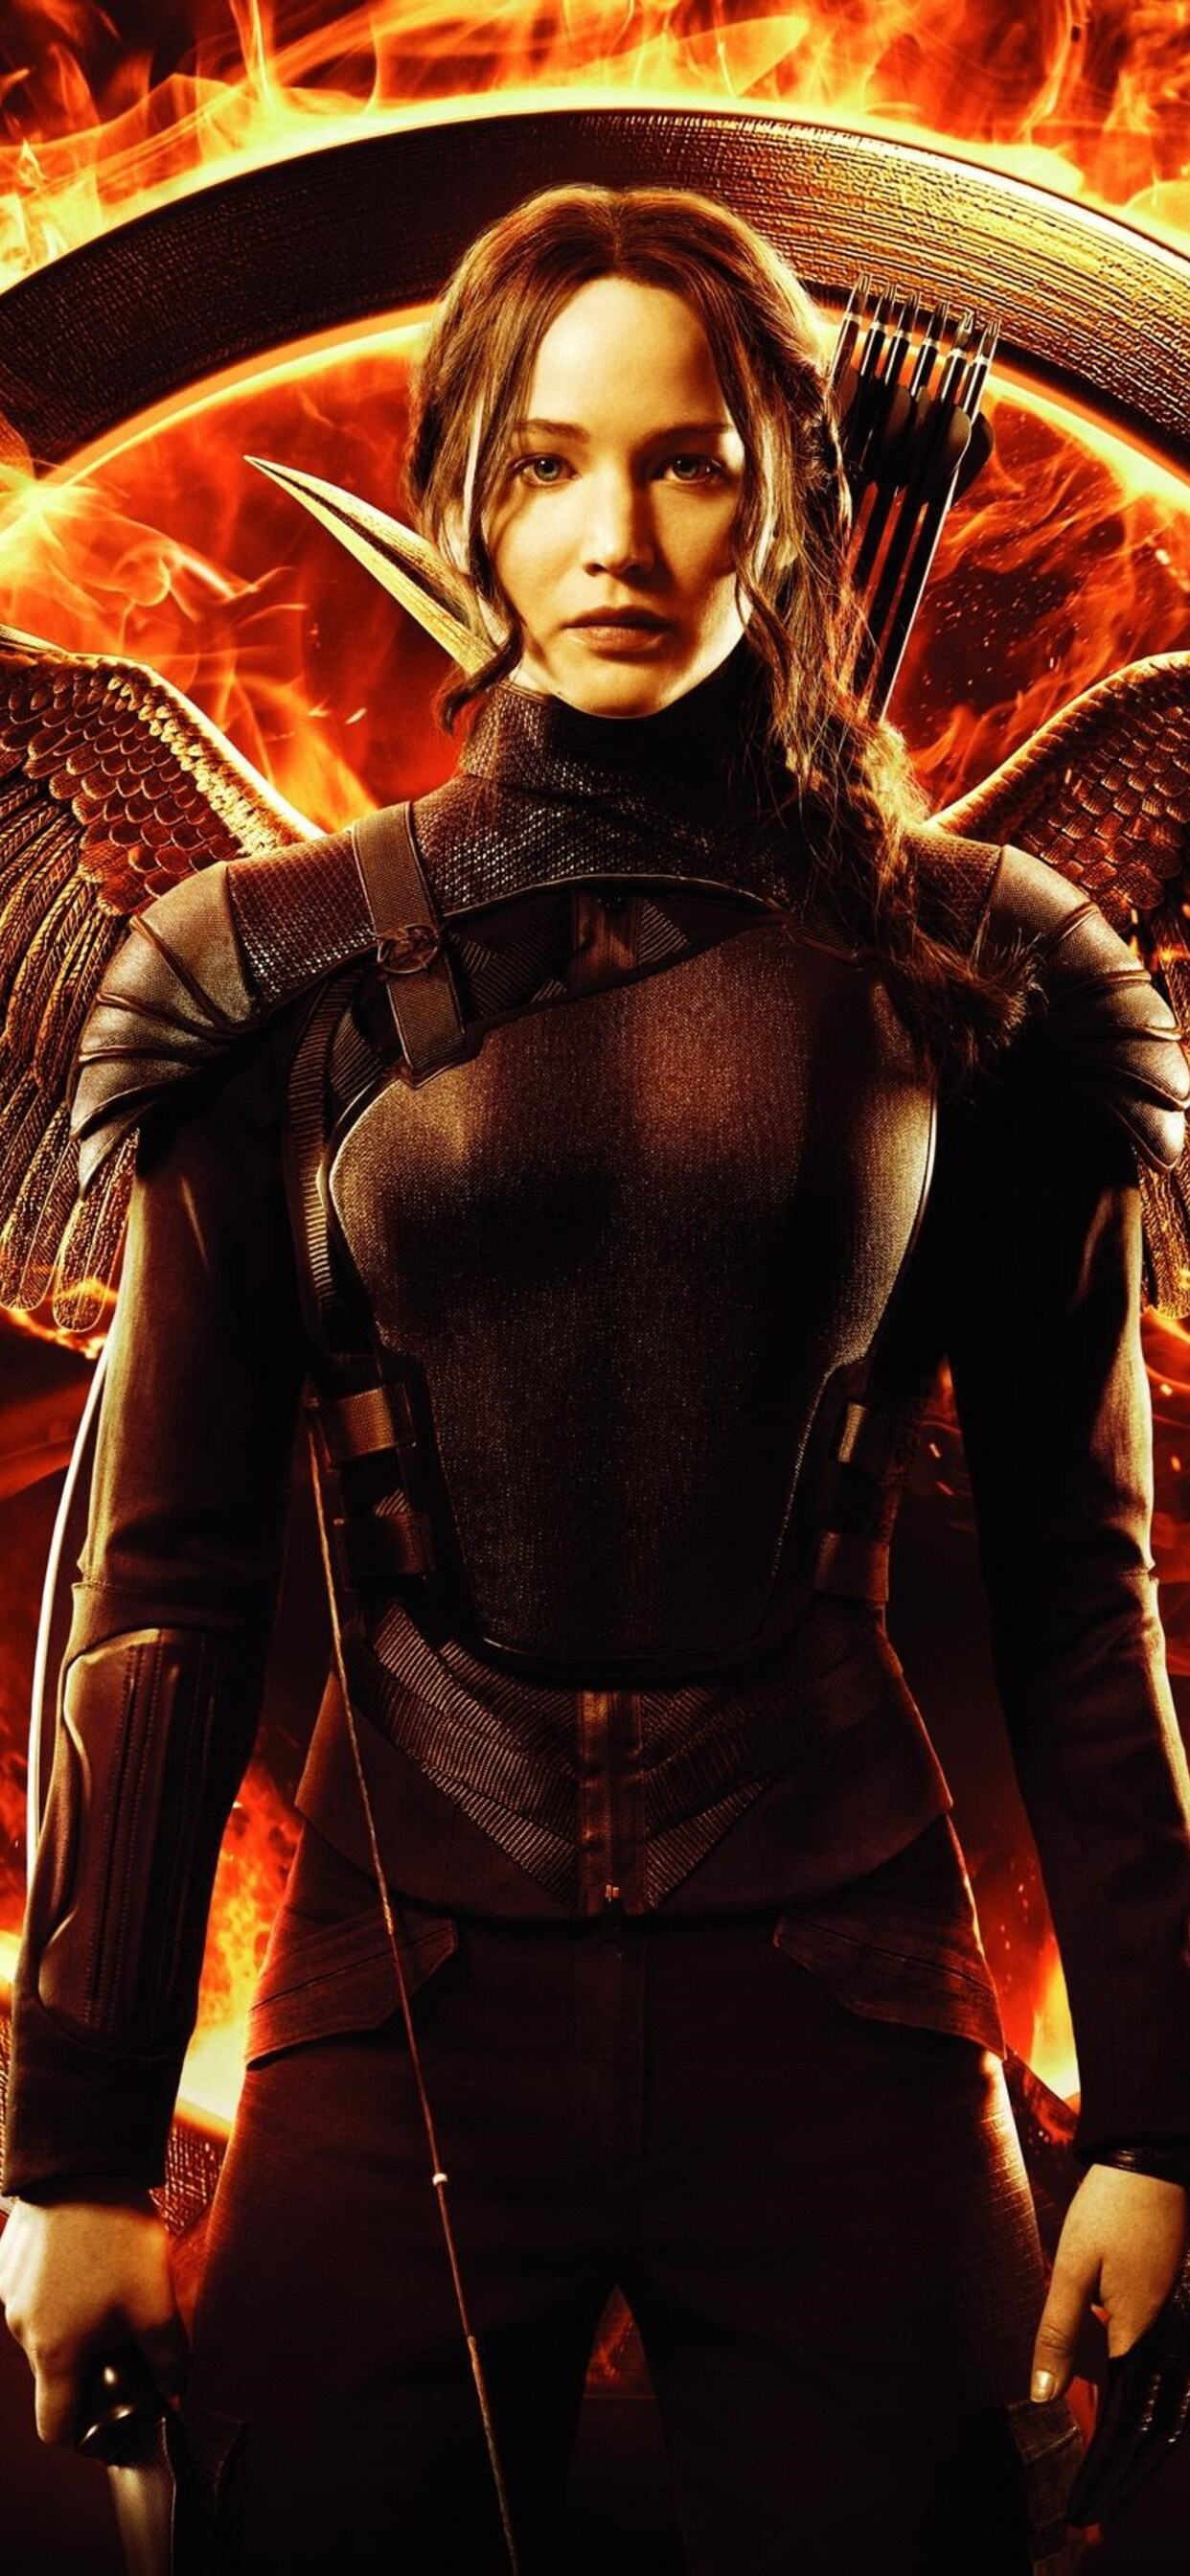 1242x2688 Jennifer Lawrence In Hunger Games Iphone Xs Max Hd